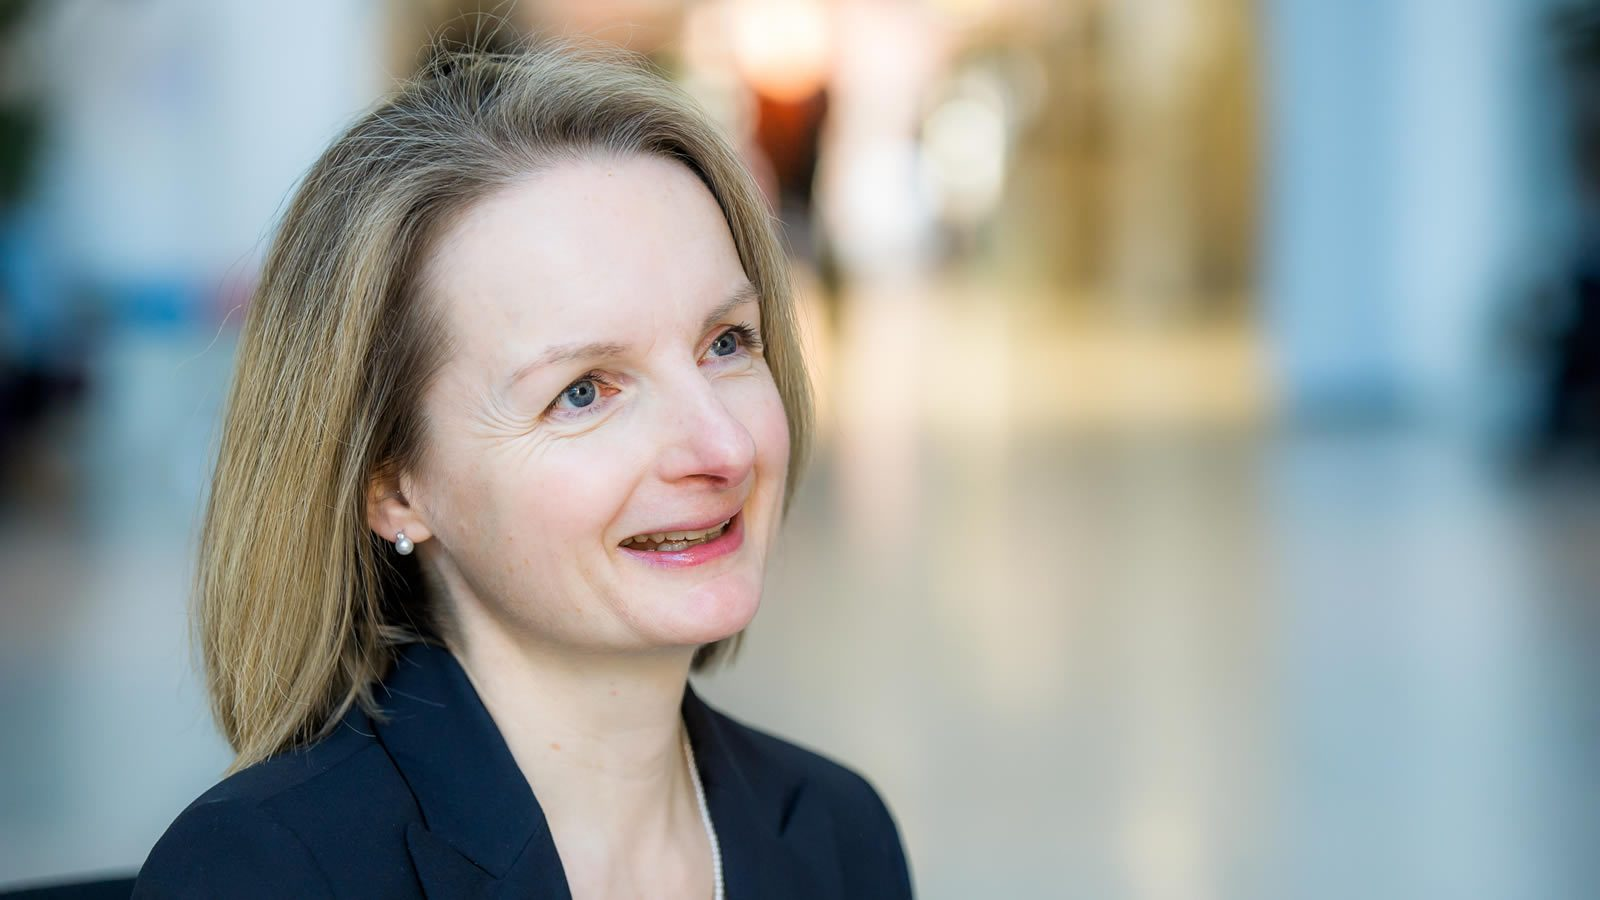 Elinor O'Connor, Director of Masters Programmes